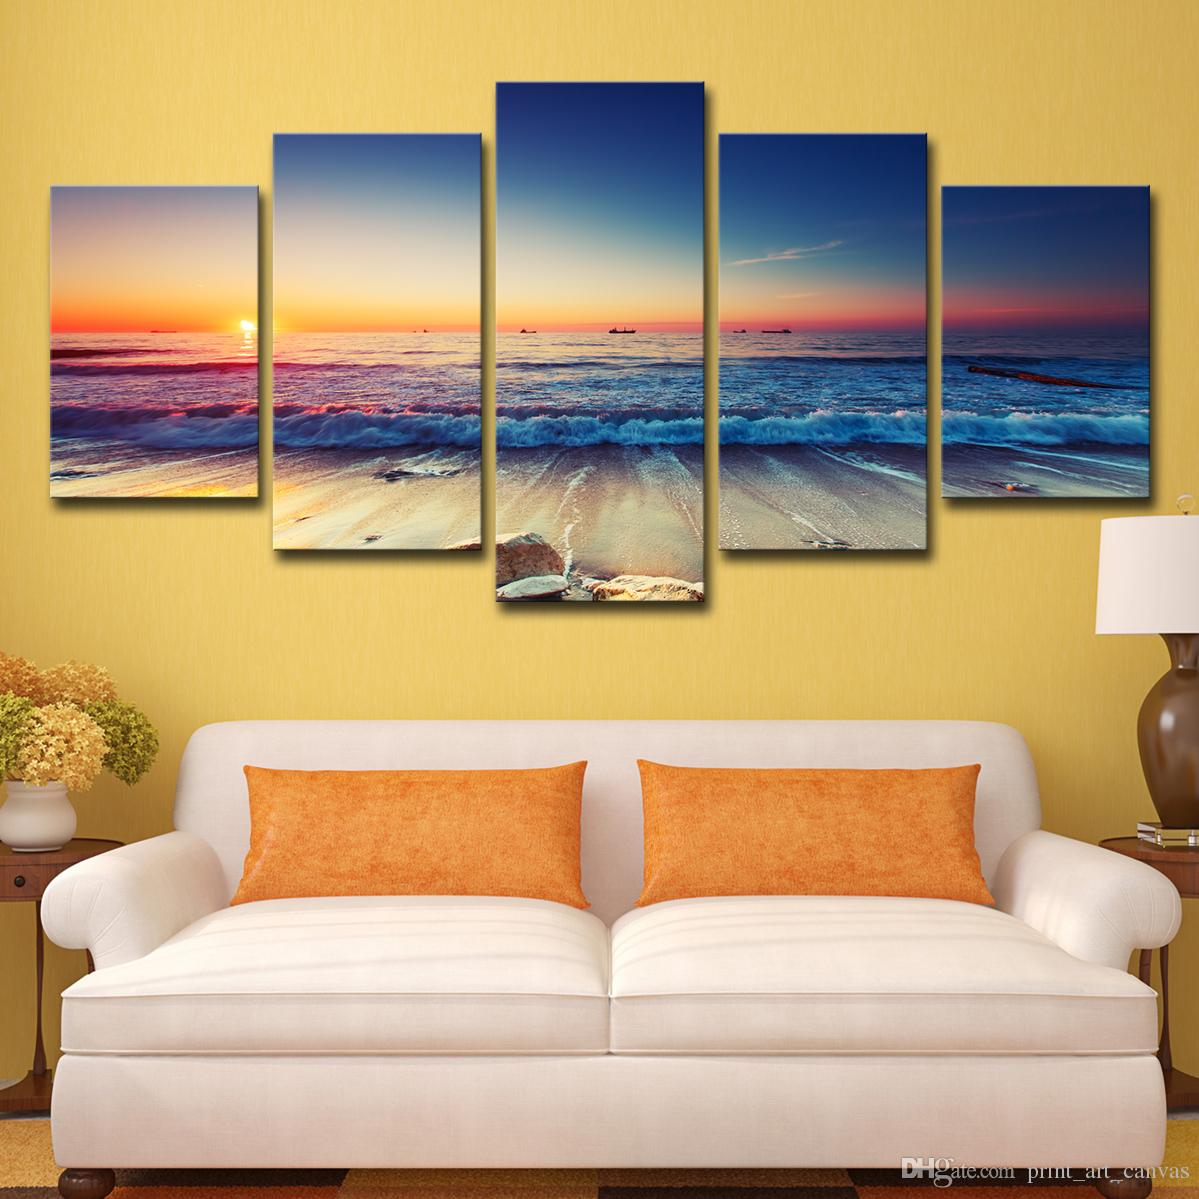 HD Printed Sunset Beach Landscape Painting Canvas Print Room Decor Print Poster Picture Canvas Free Shipping